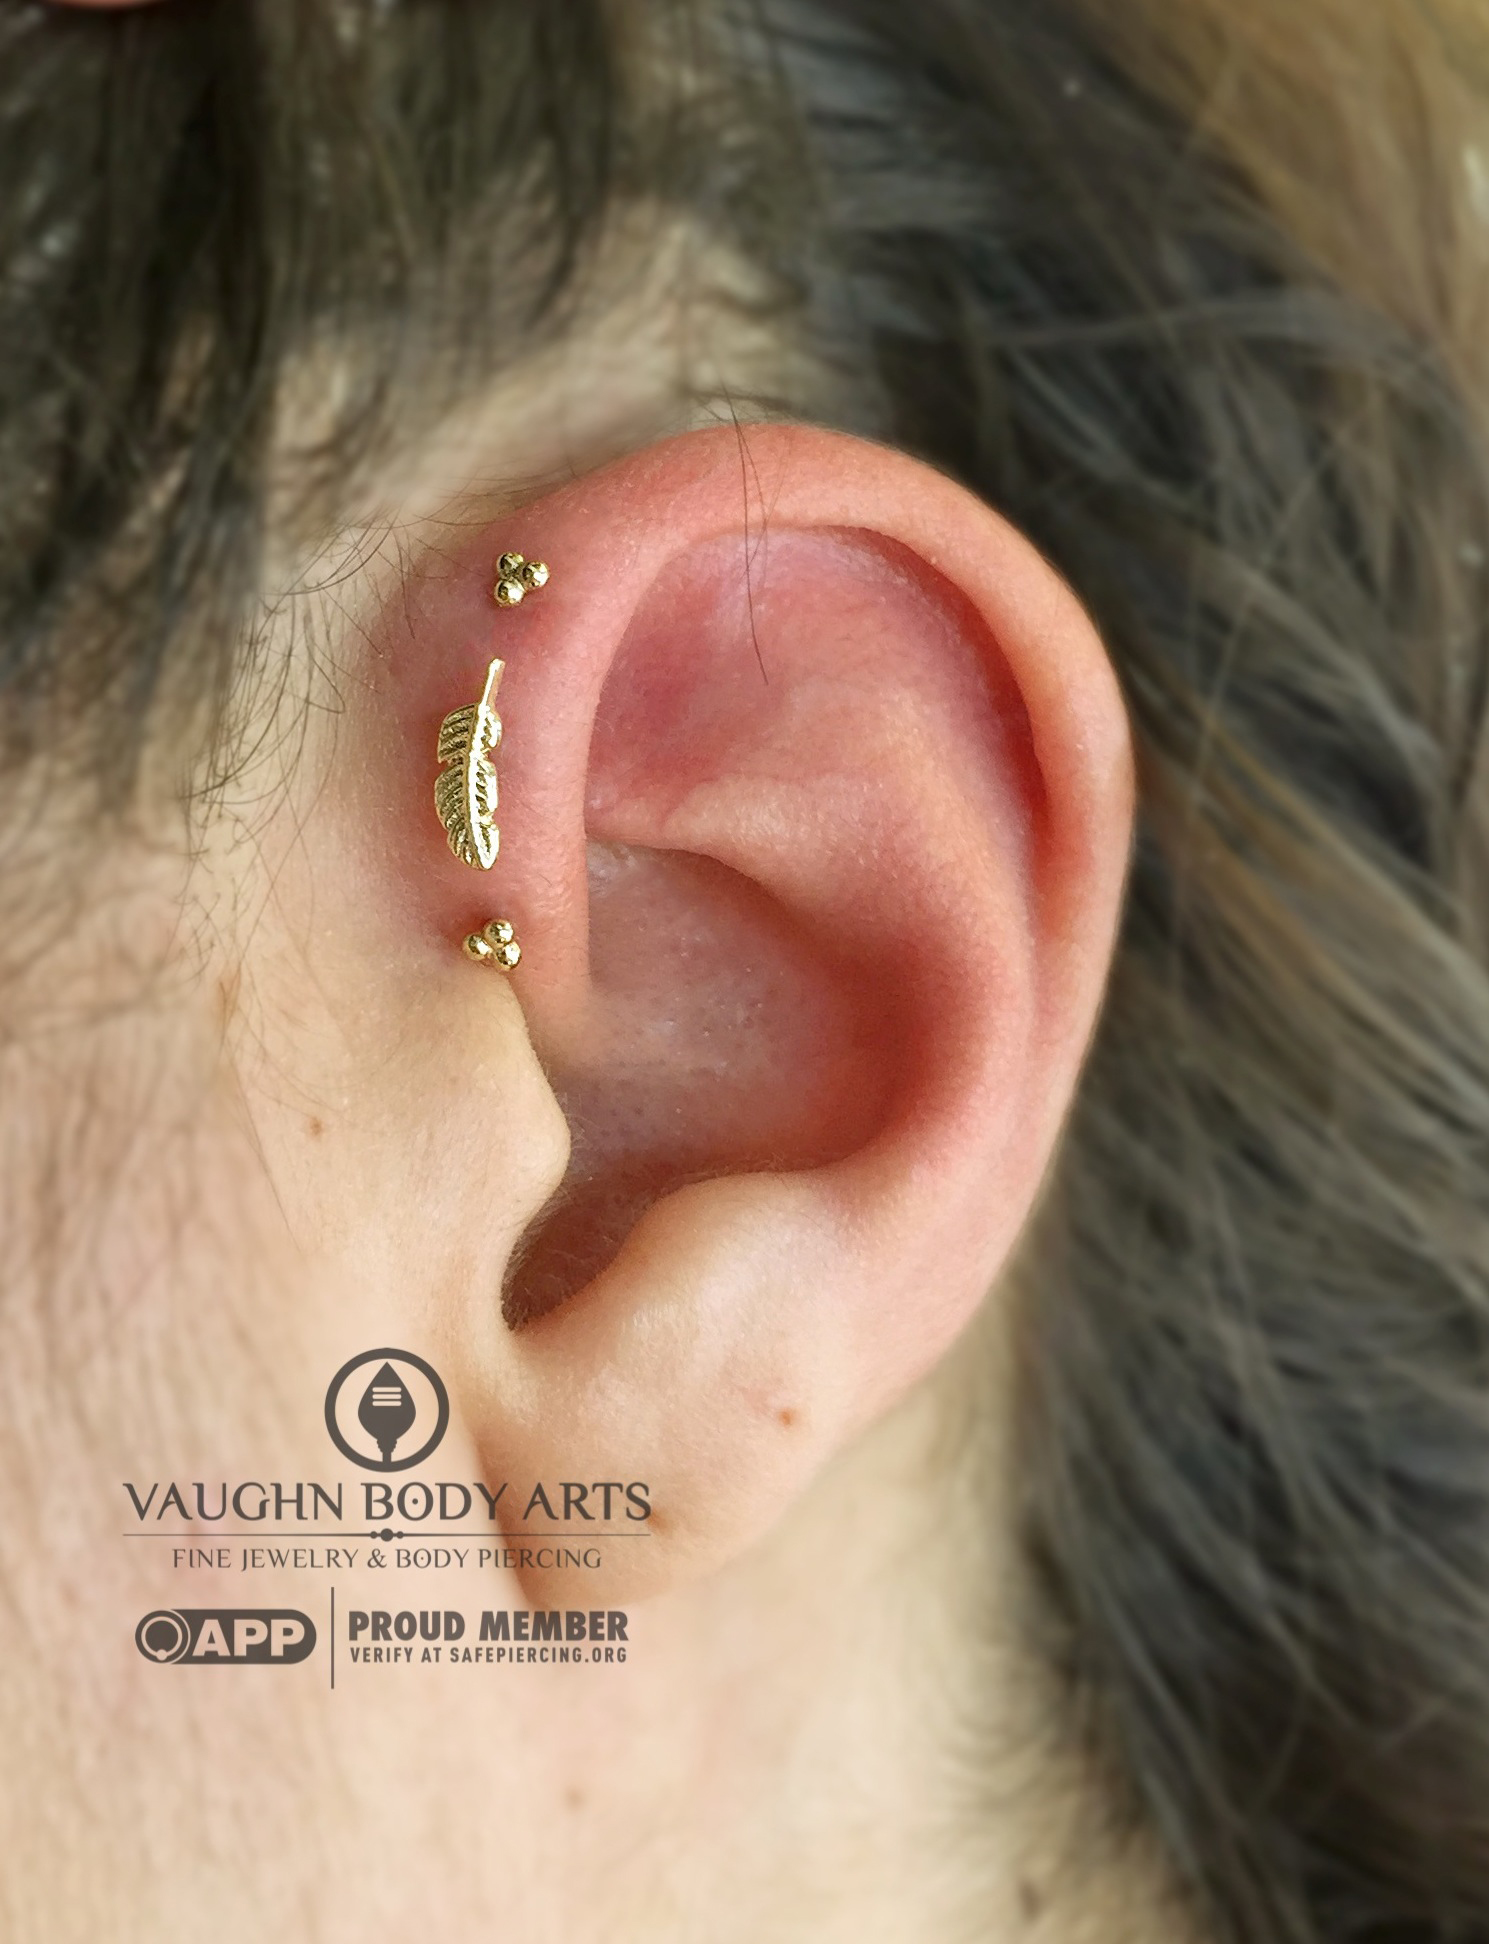 Triple forward helix piercings with 14k yellow gold jewelry from BVLA.